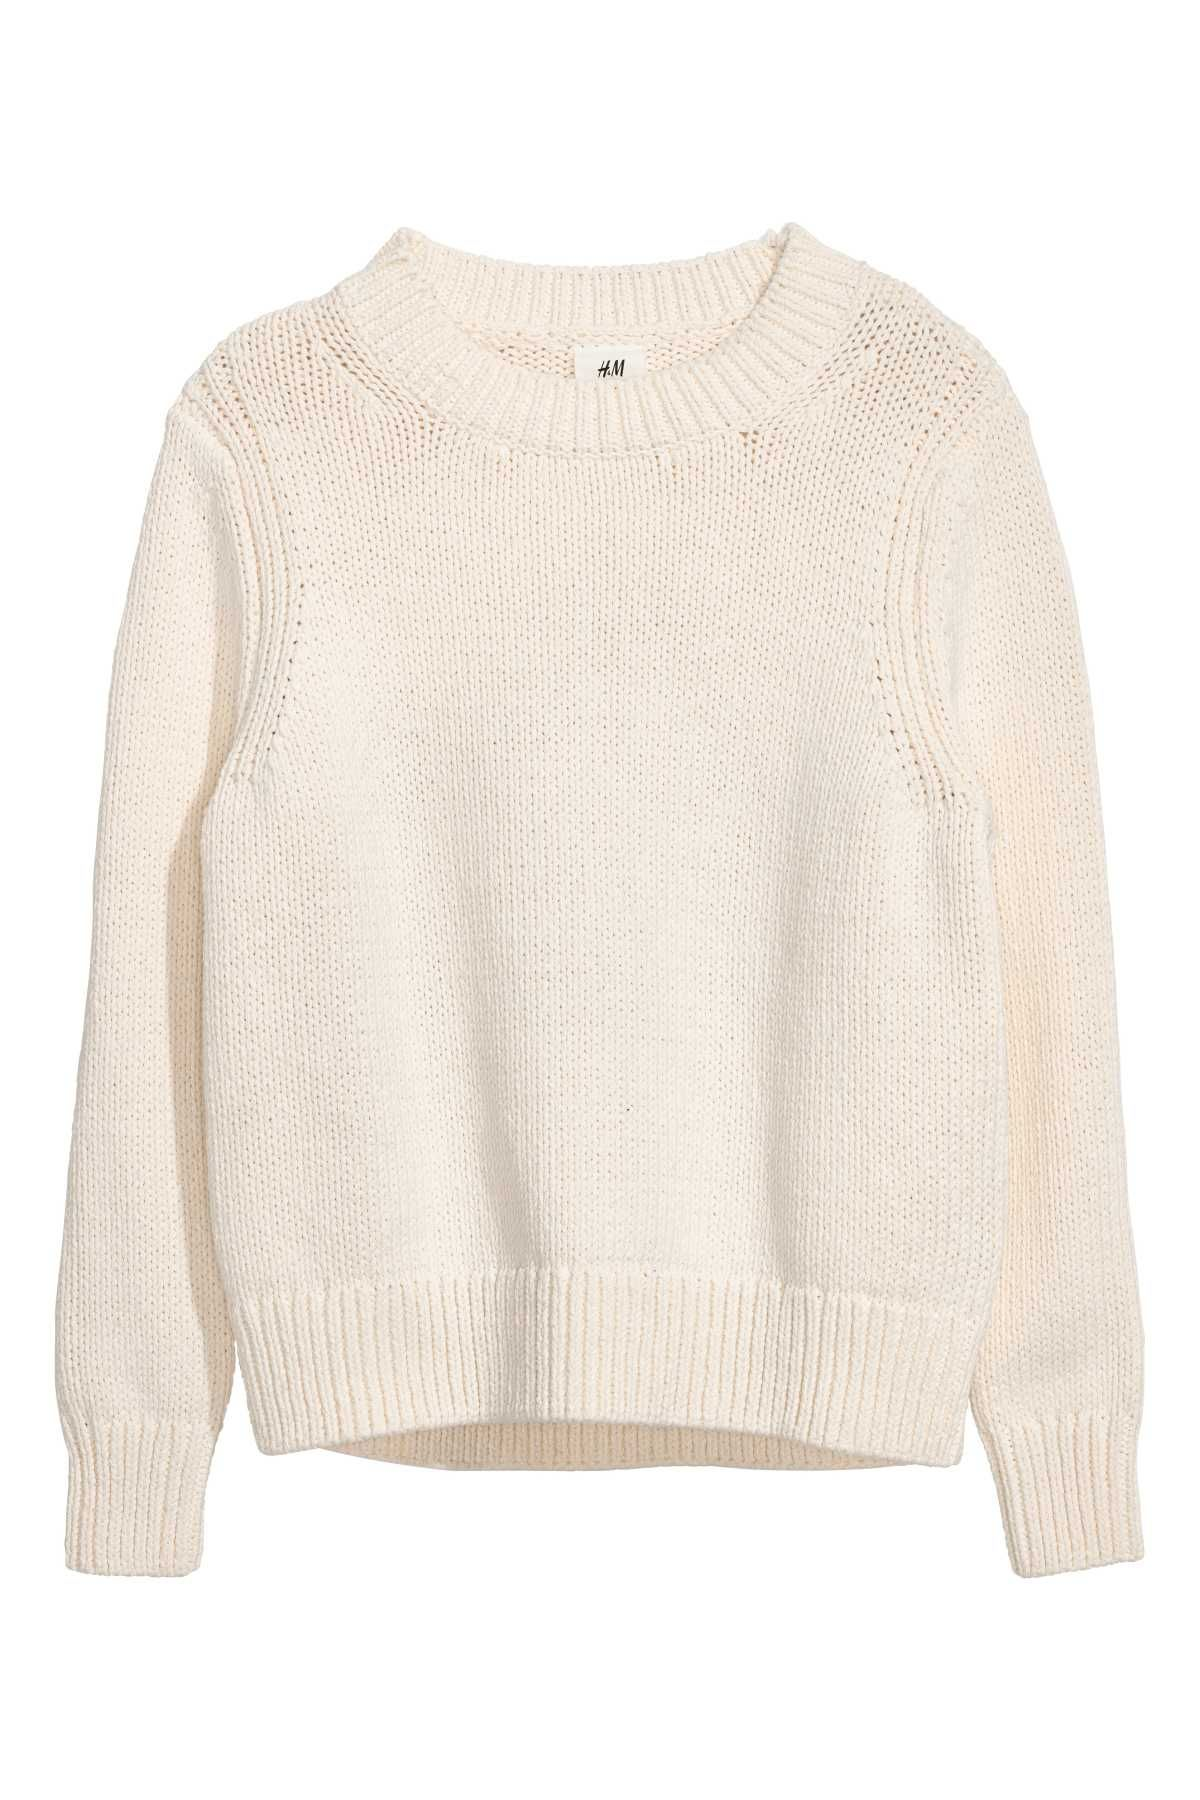 817b6ee74f1 Natural white. STUDIO COLLECTION. Chunky-knit sweater in thick ...